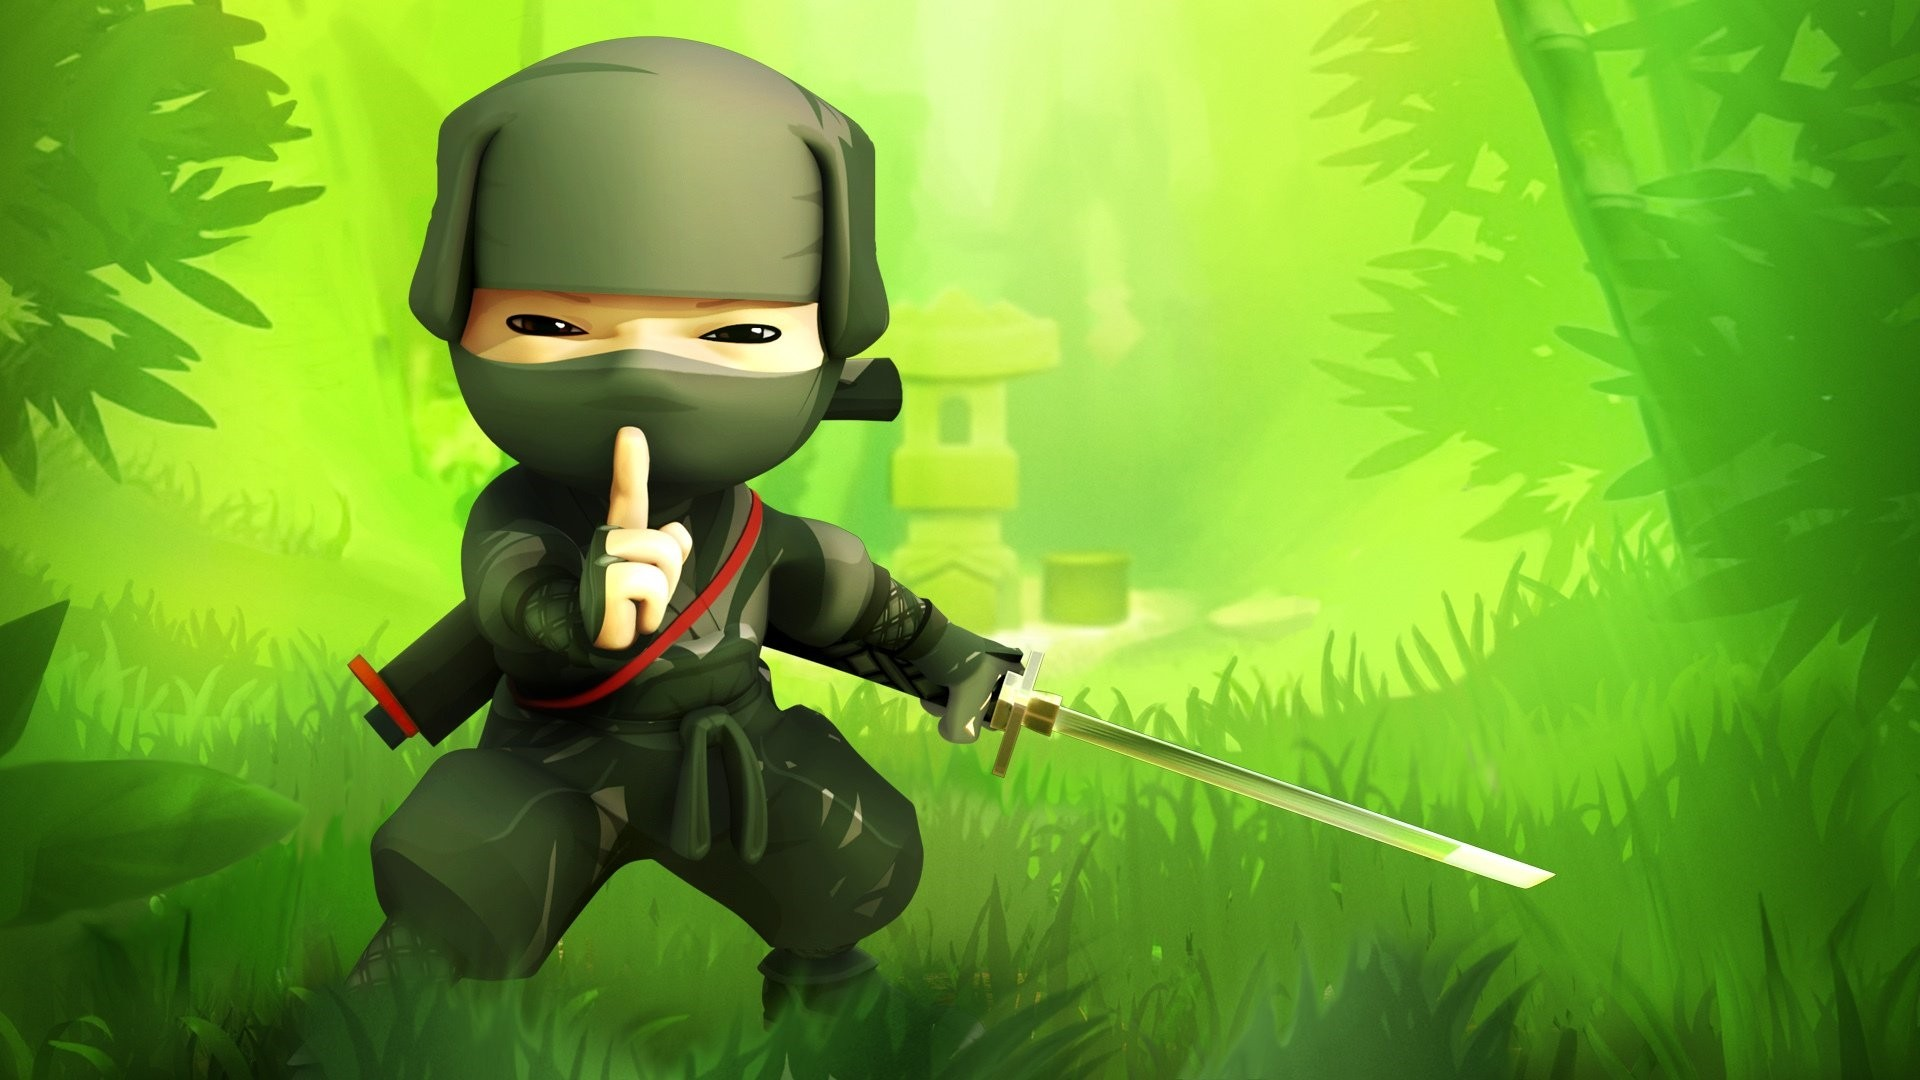 Ninja Wallpaper Picture hd